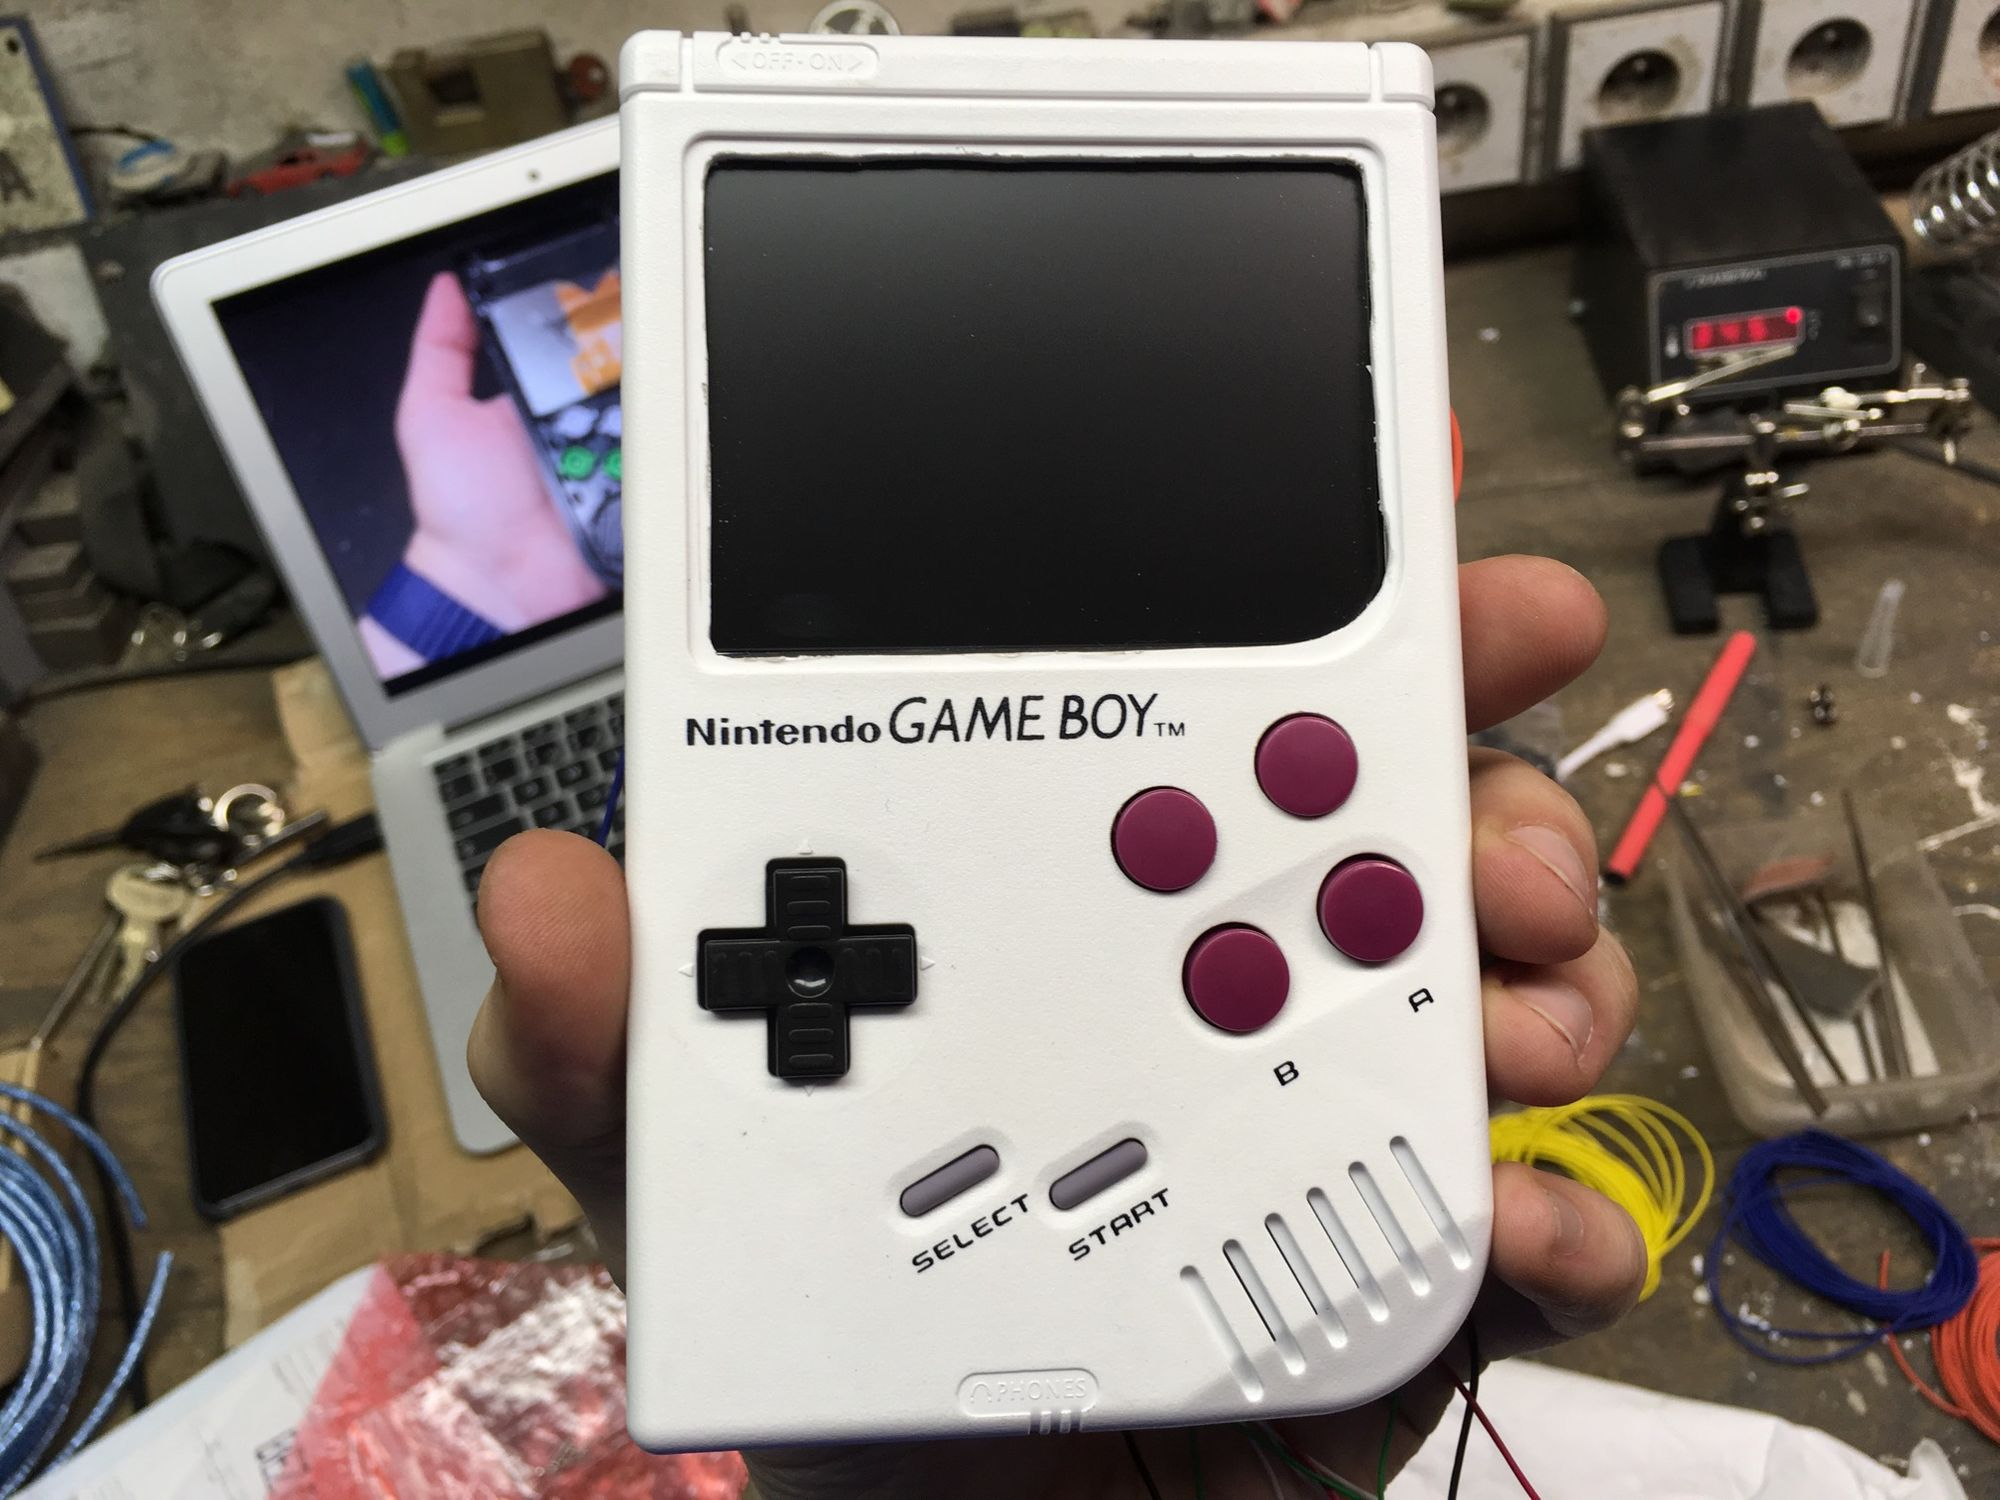 Retro gallery: GameBoy Zero